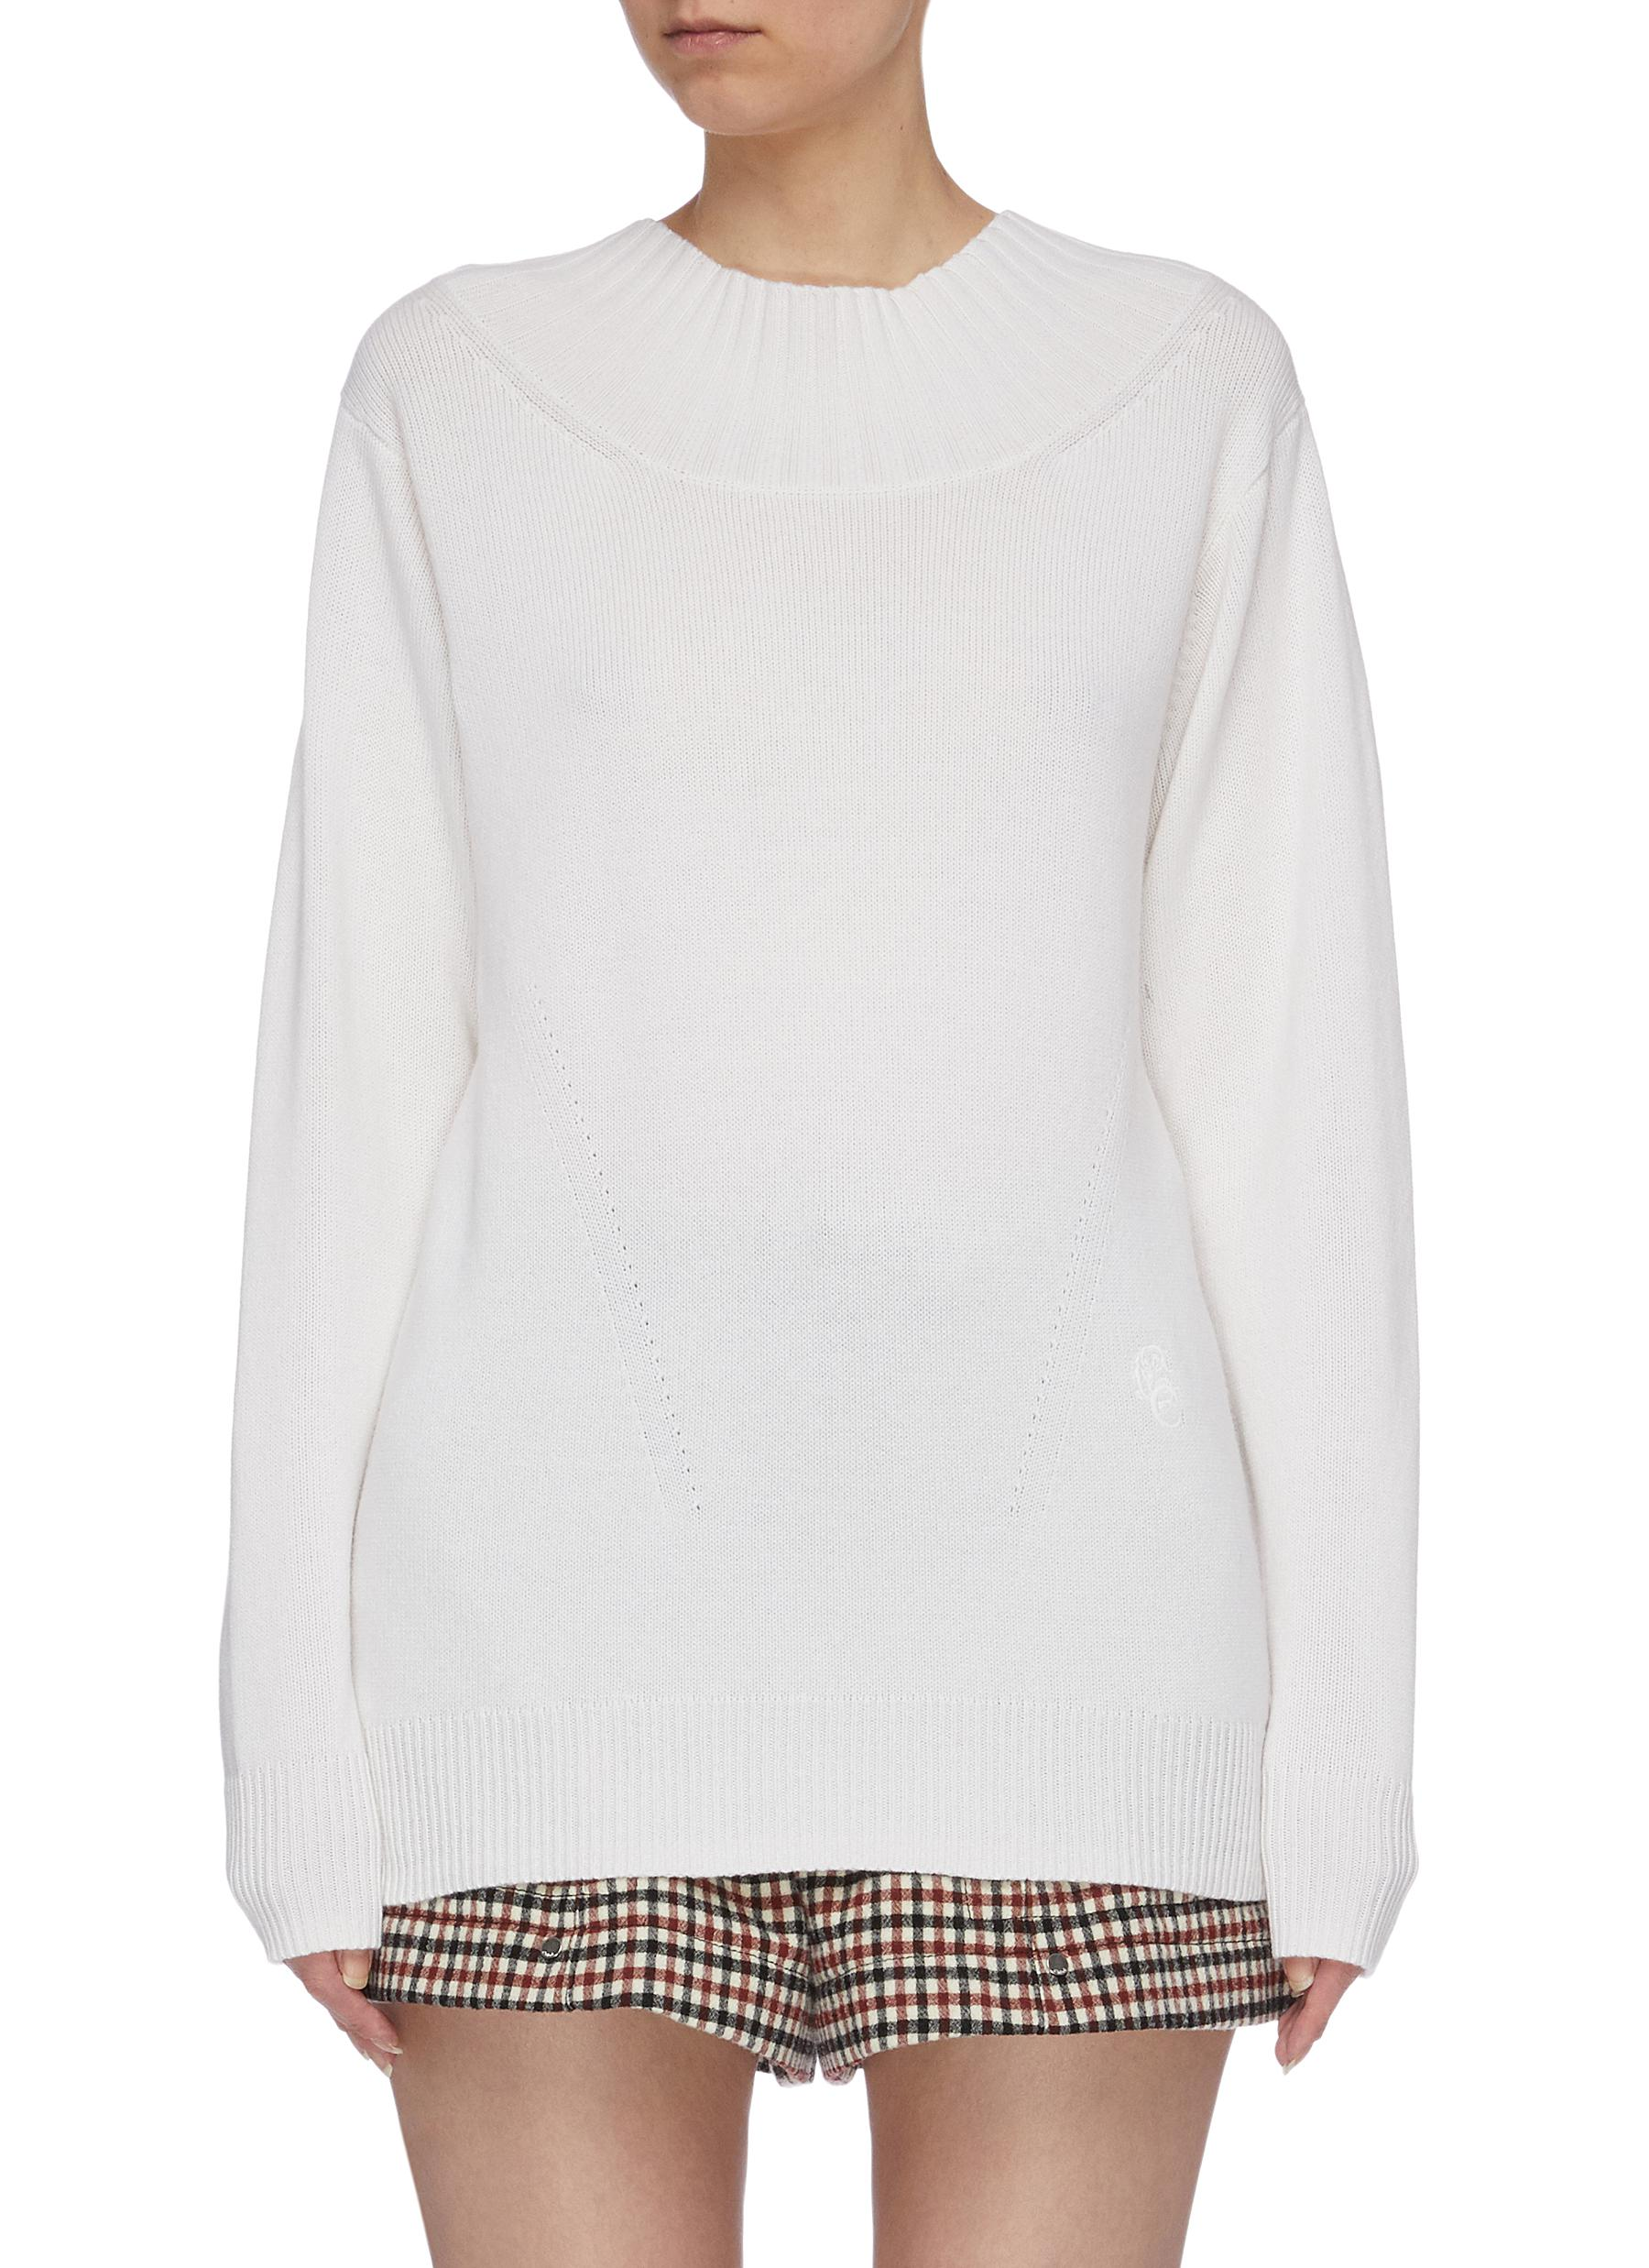 Tie open back cashmere sweater by Chloé